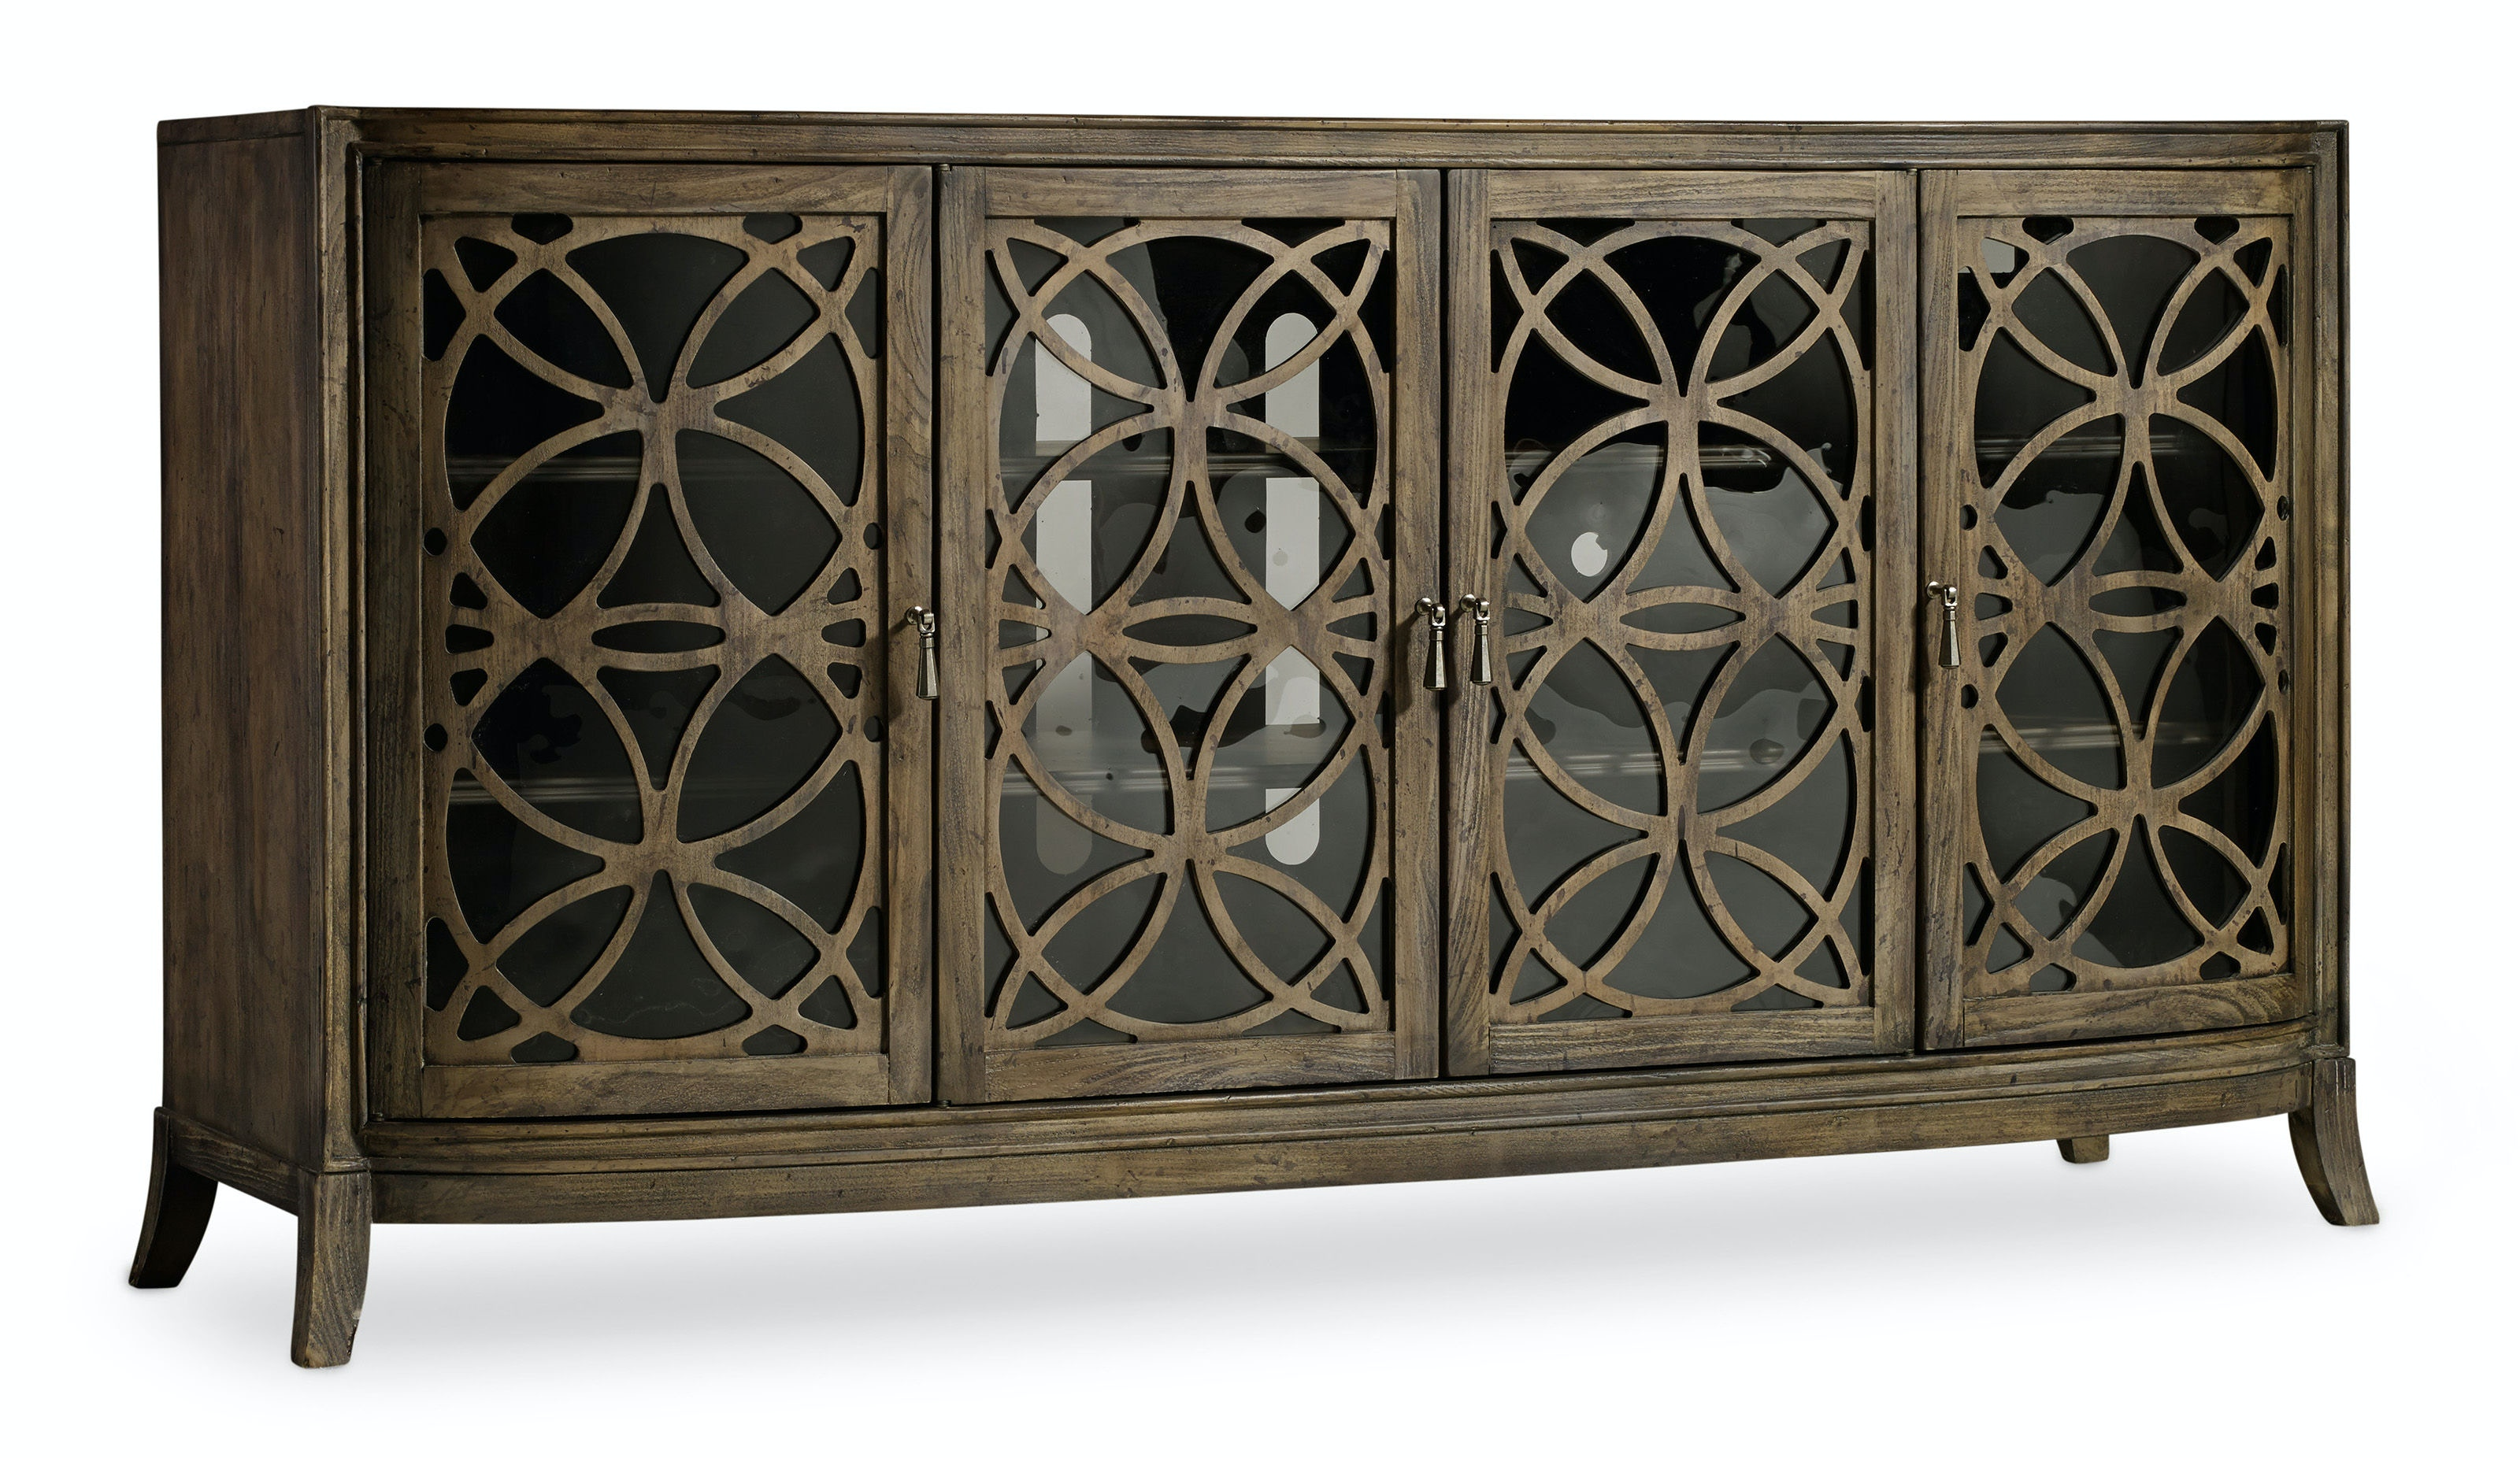 Hooker Furniture Home Entertainment Melange Sloan Console 638 55010   Slone  Brothers   Longwood And Orlando, FL